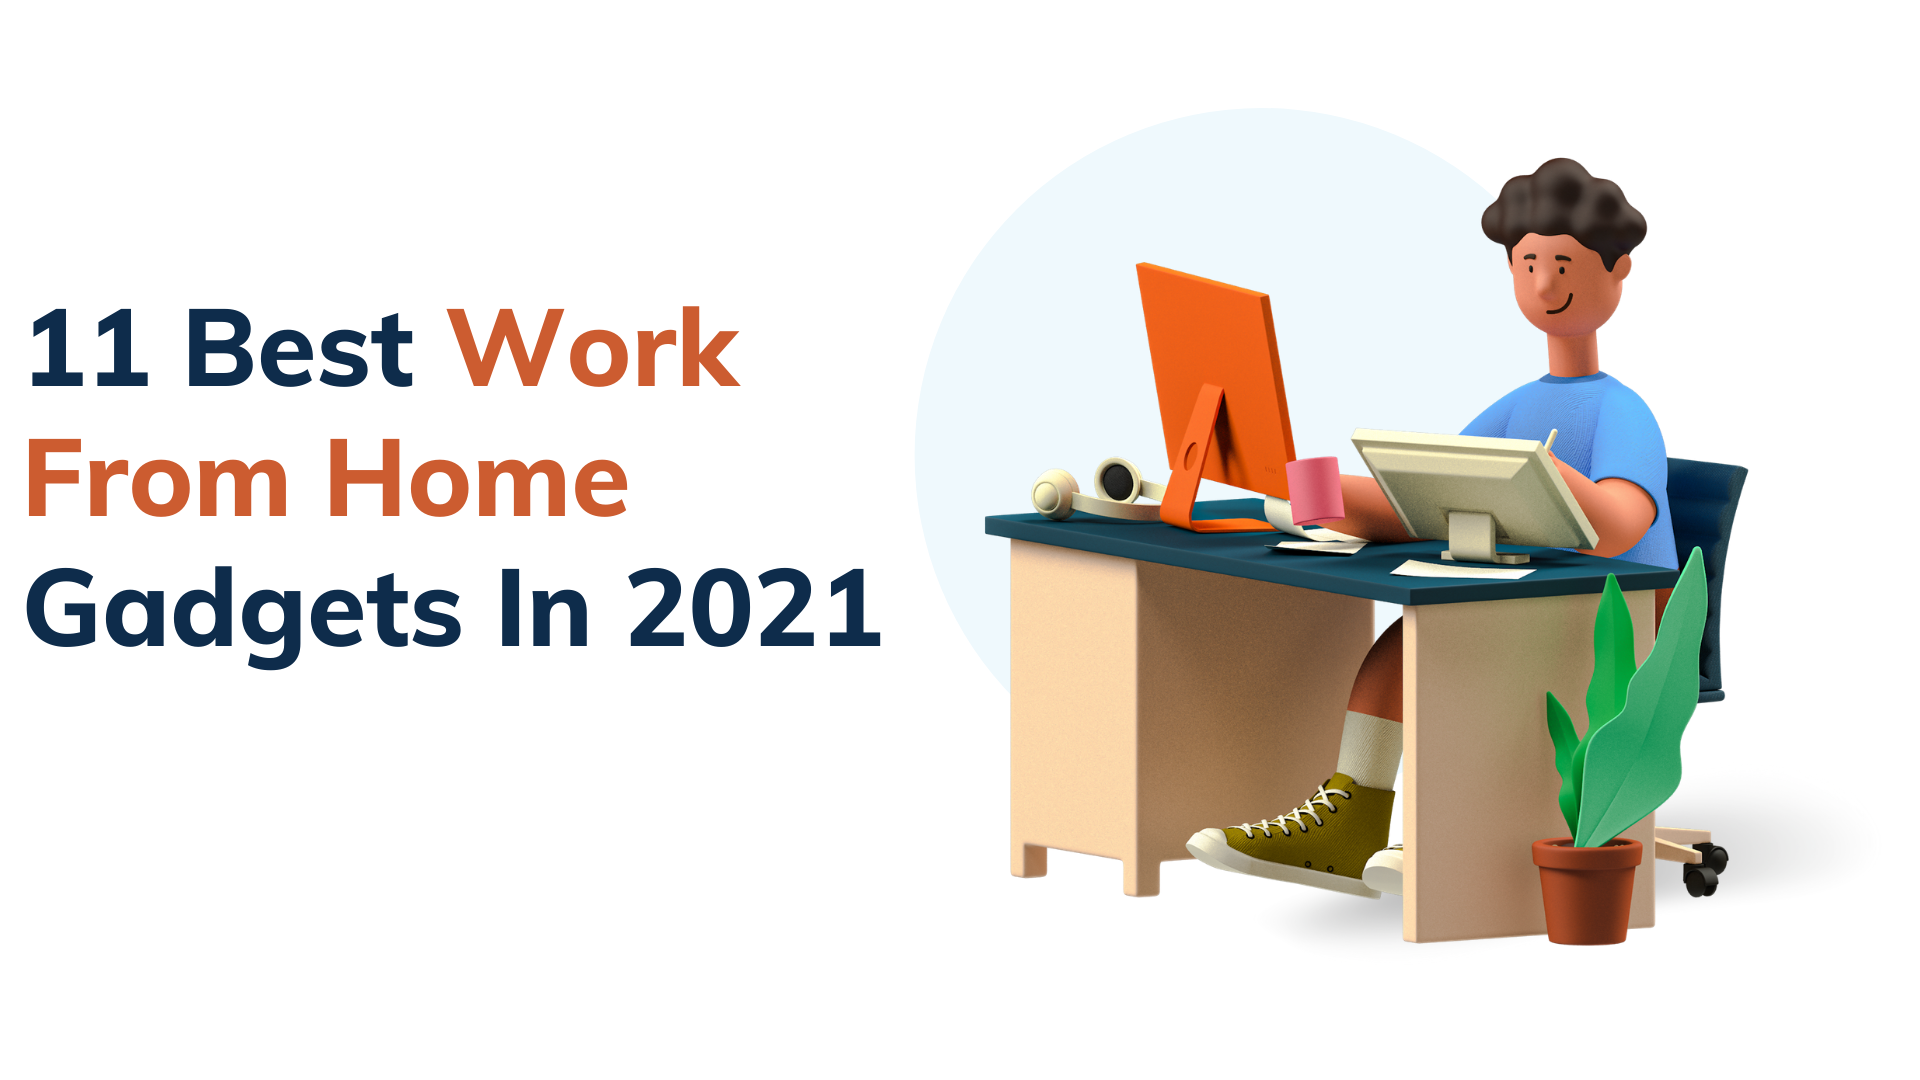 11 Best Work From Home Gadgets In 2021 - Tec2solutionblog